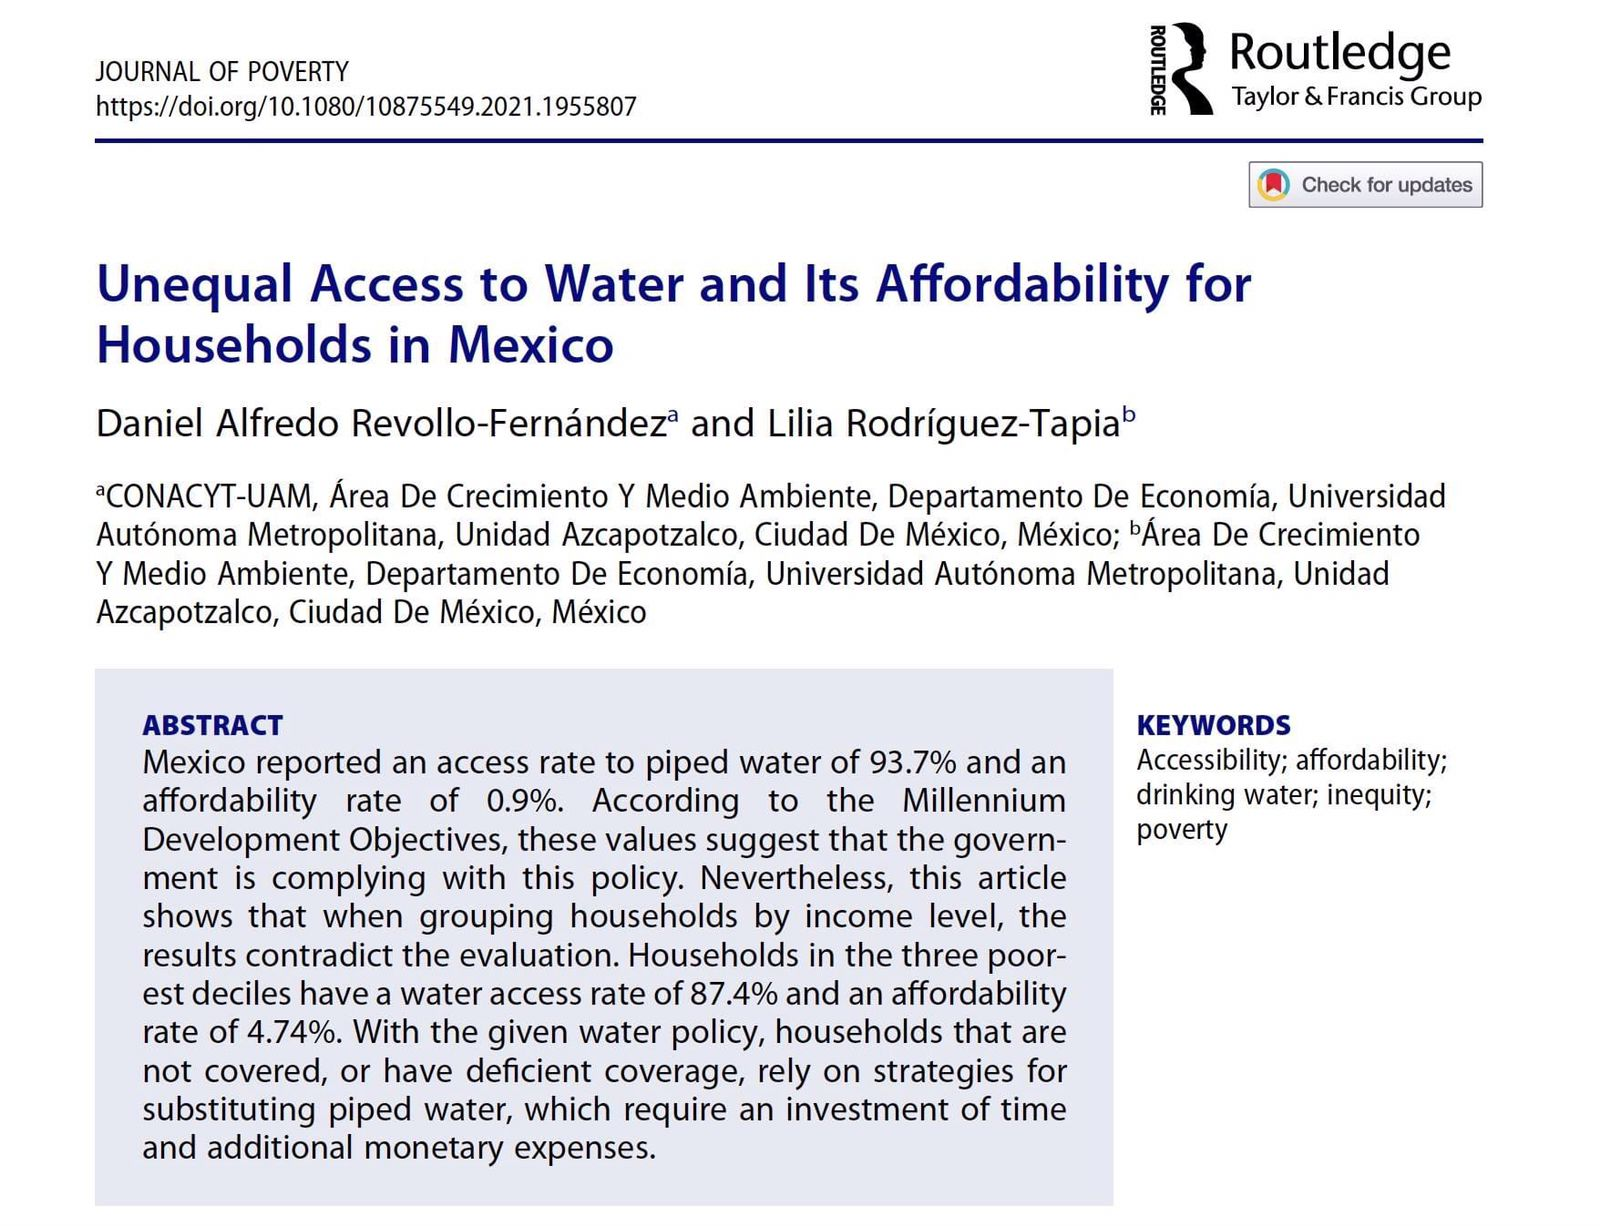 Unequal Access to Water and Its Affordability for Households in Mexico (Journal Poverty)